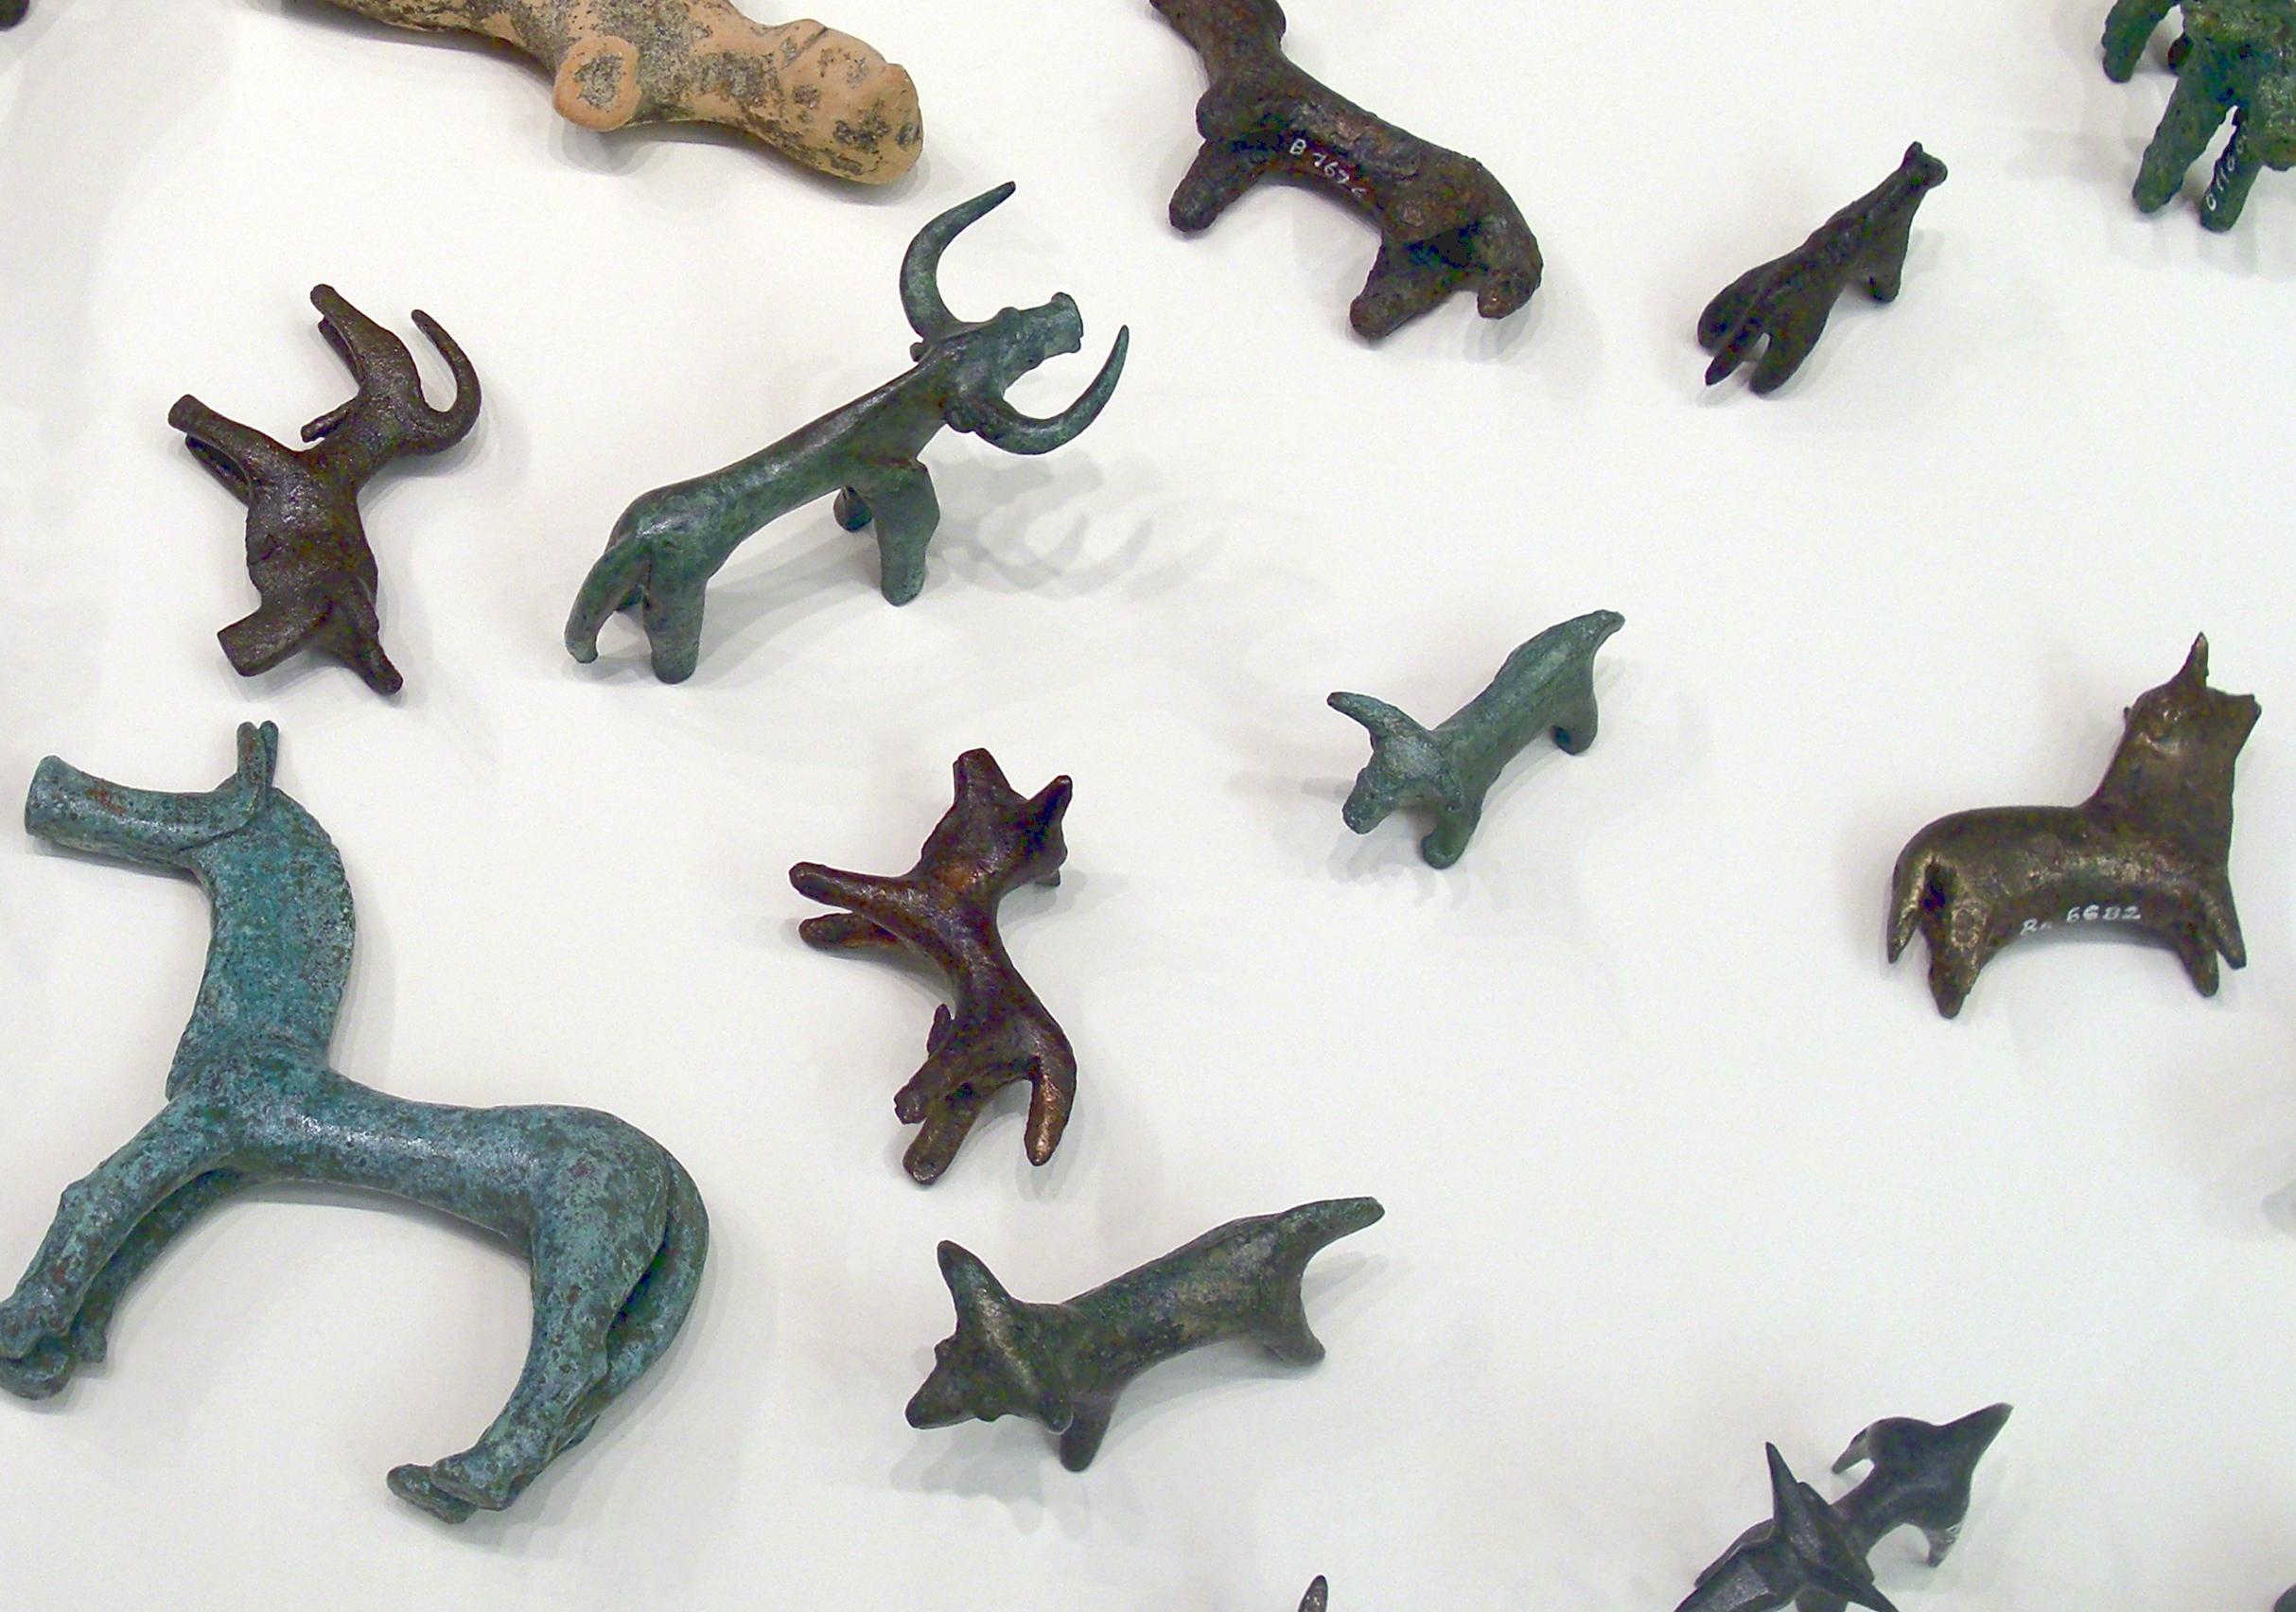 Bronze animal statuettes from Olympia. Votive gifts, 8th - 7th century BC. On display in the archeologic museum of Olympia, Greece. : Wiki Commons